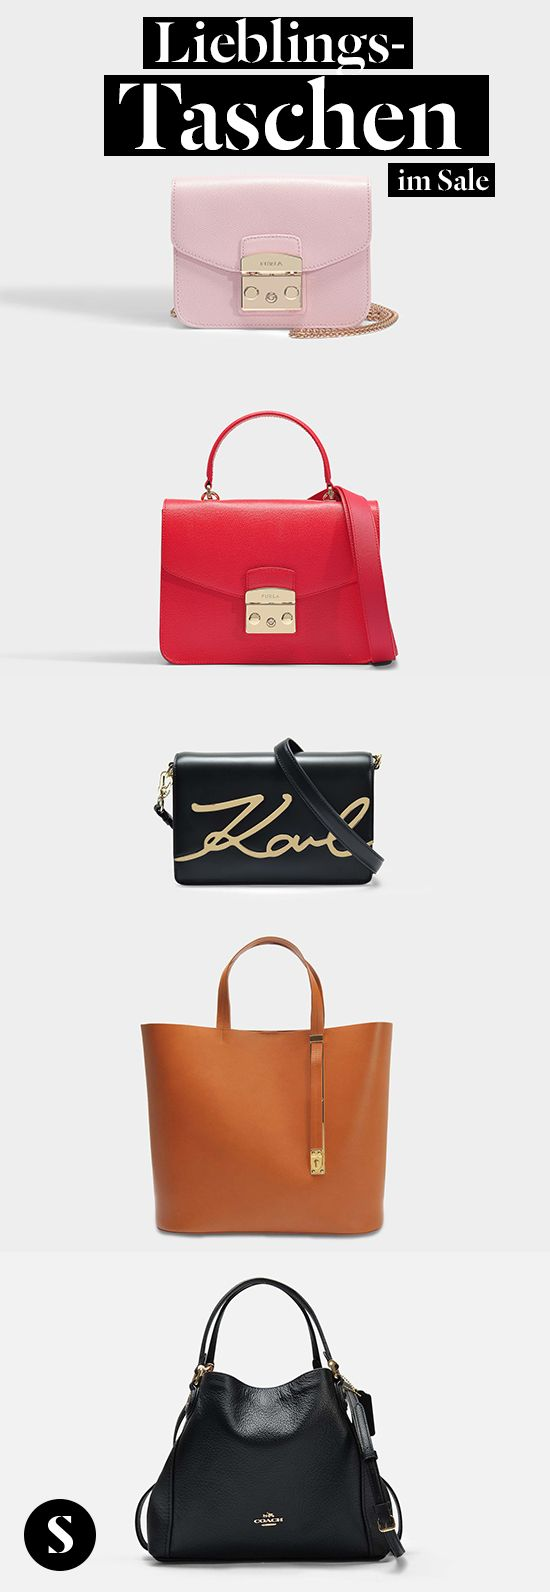 Looking for a new leather favorite bag, lightweight fabric in a trendy trendy color? Lucky: we present you labels like Michael …